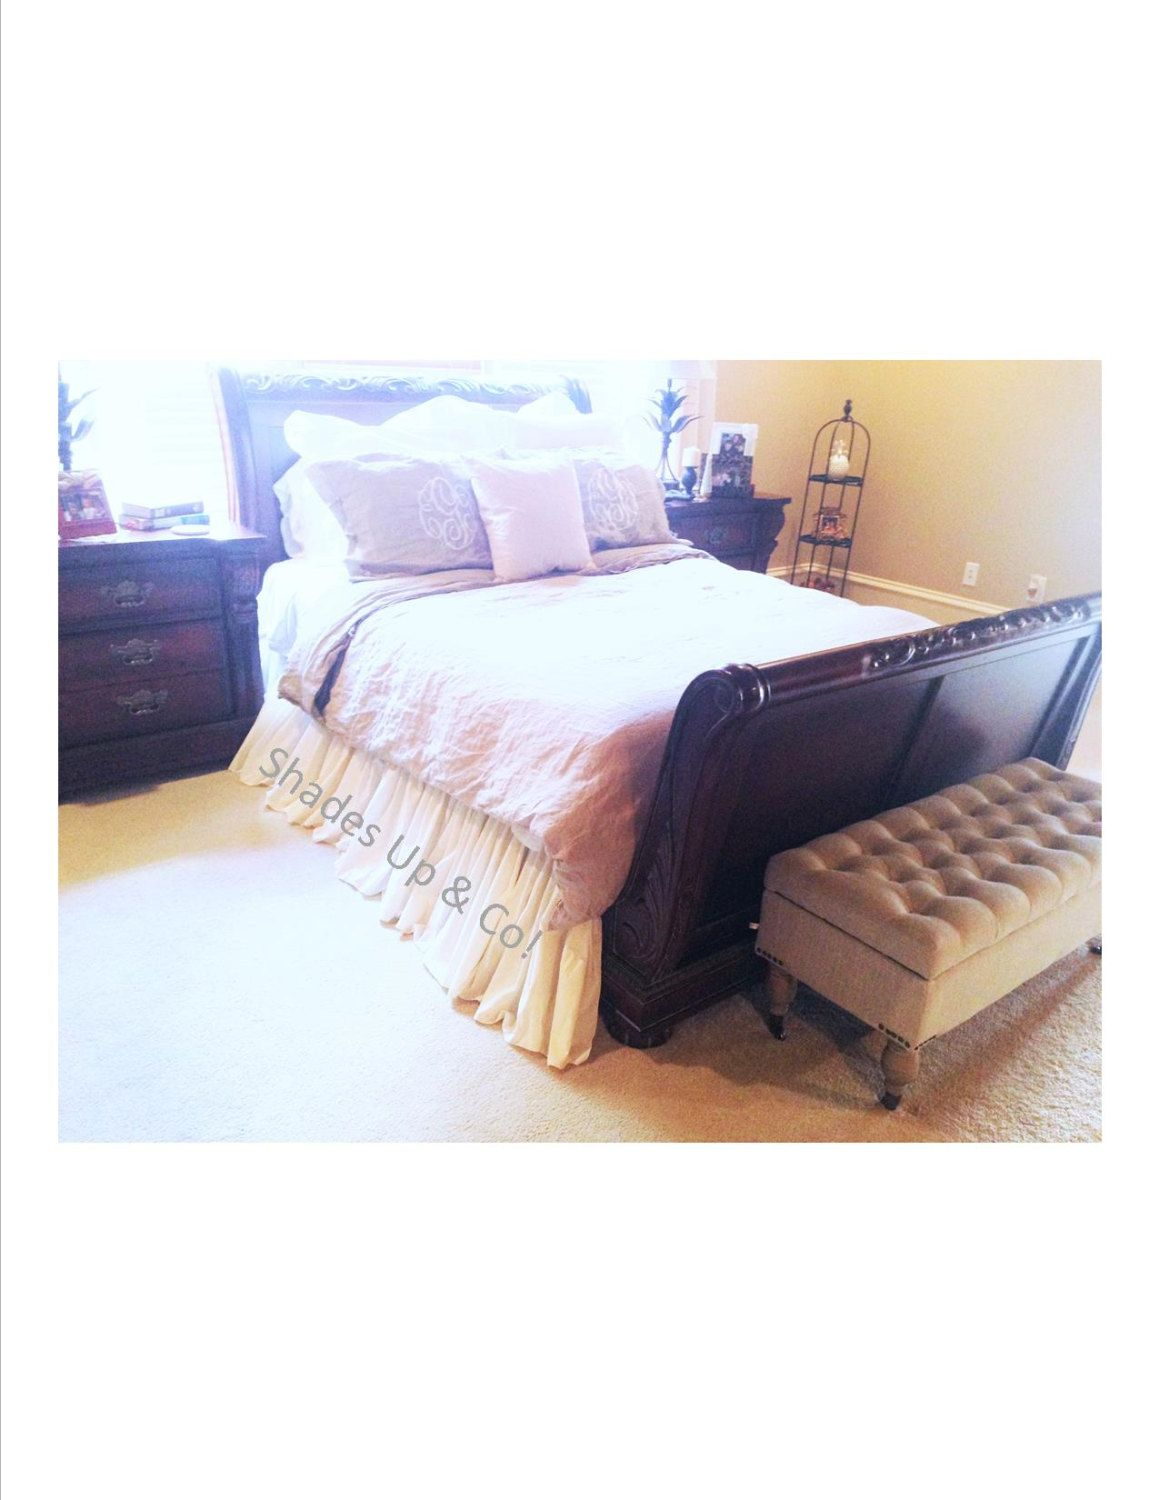 Made To Order Dust Ruffles Are A 6 To 8 Week Turnaround This Queen Size B Ruffle Bedding King Size Bed Skirt Ruffle Bed Skirts